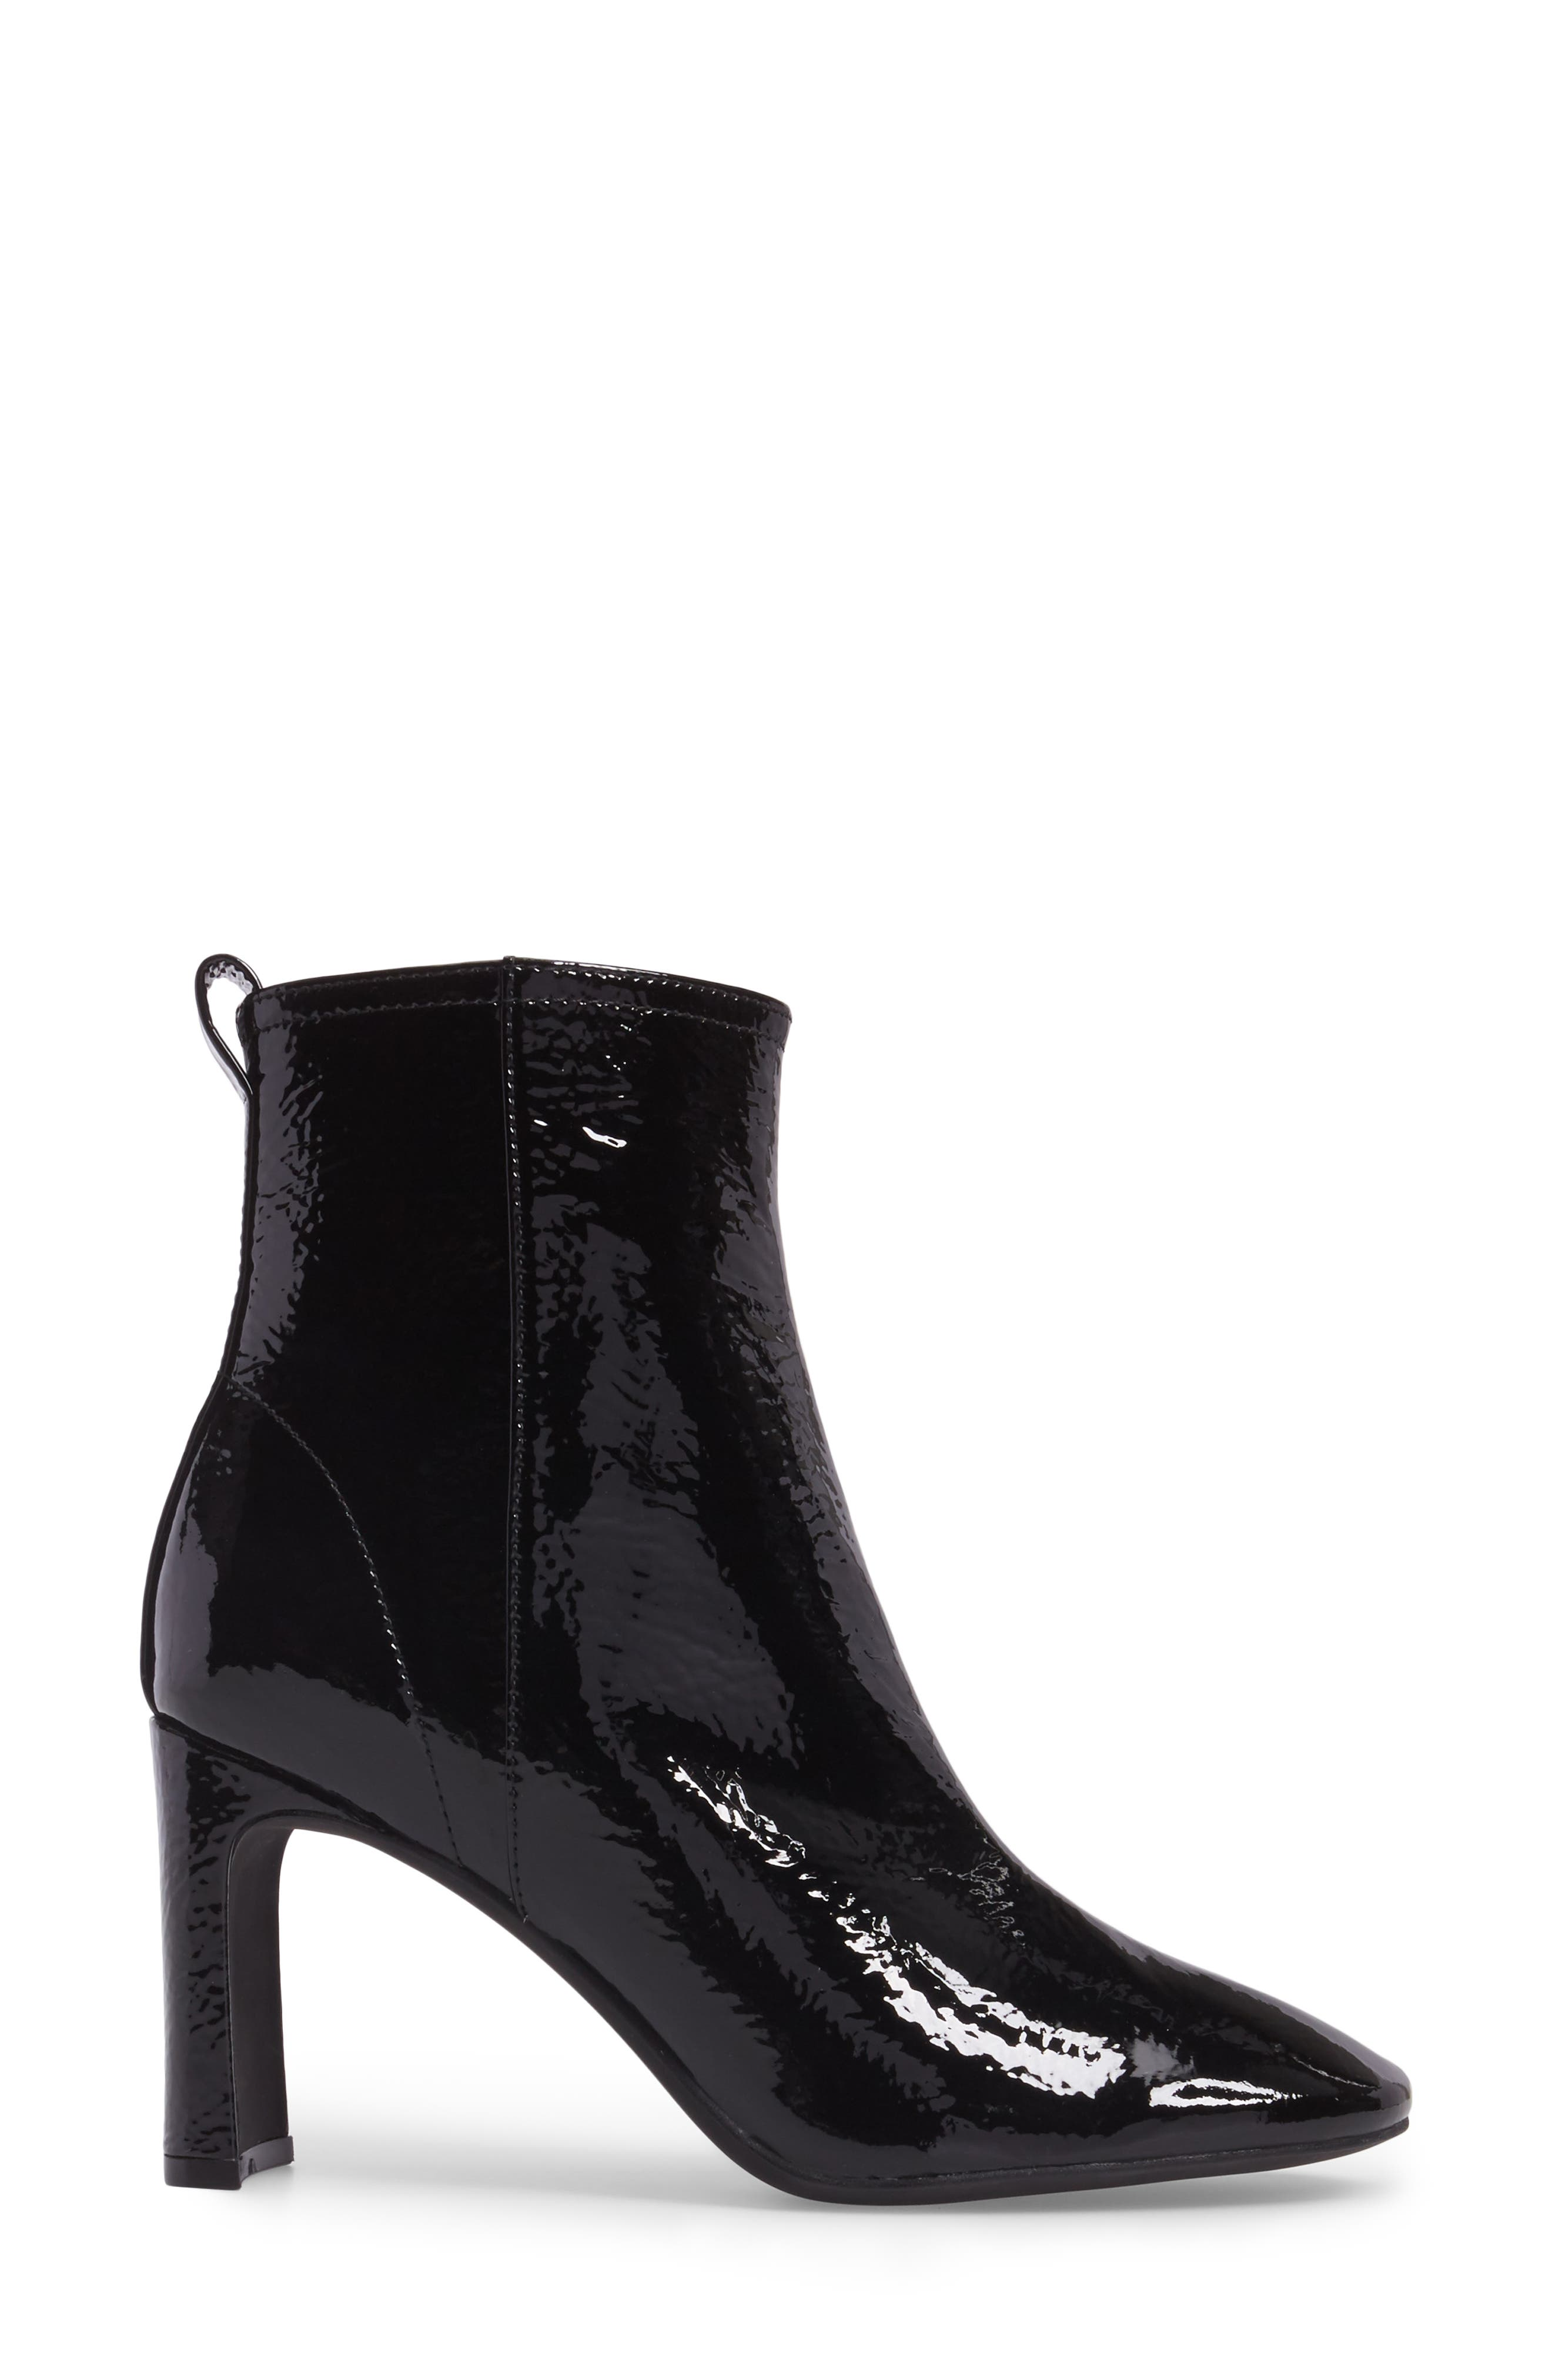 Chapel Curved Heel Bootie,                             Alternate thumbnail 3, color,                             Black Crinkle Patent